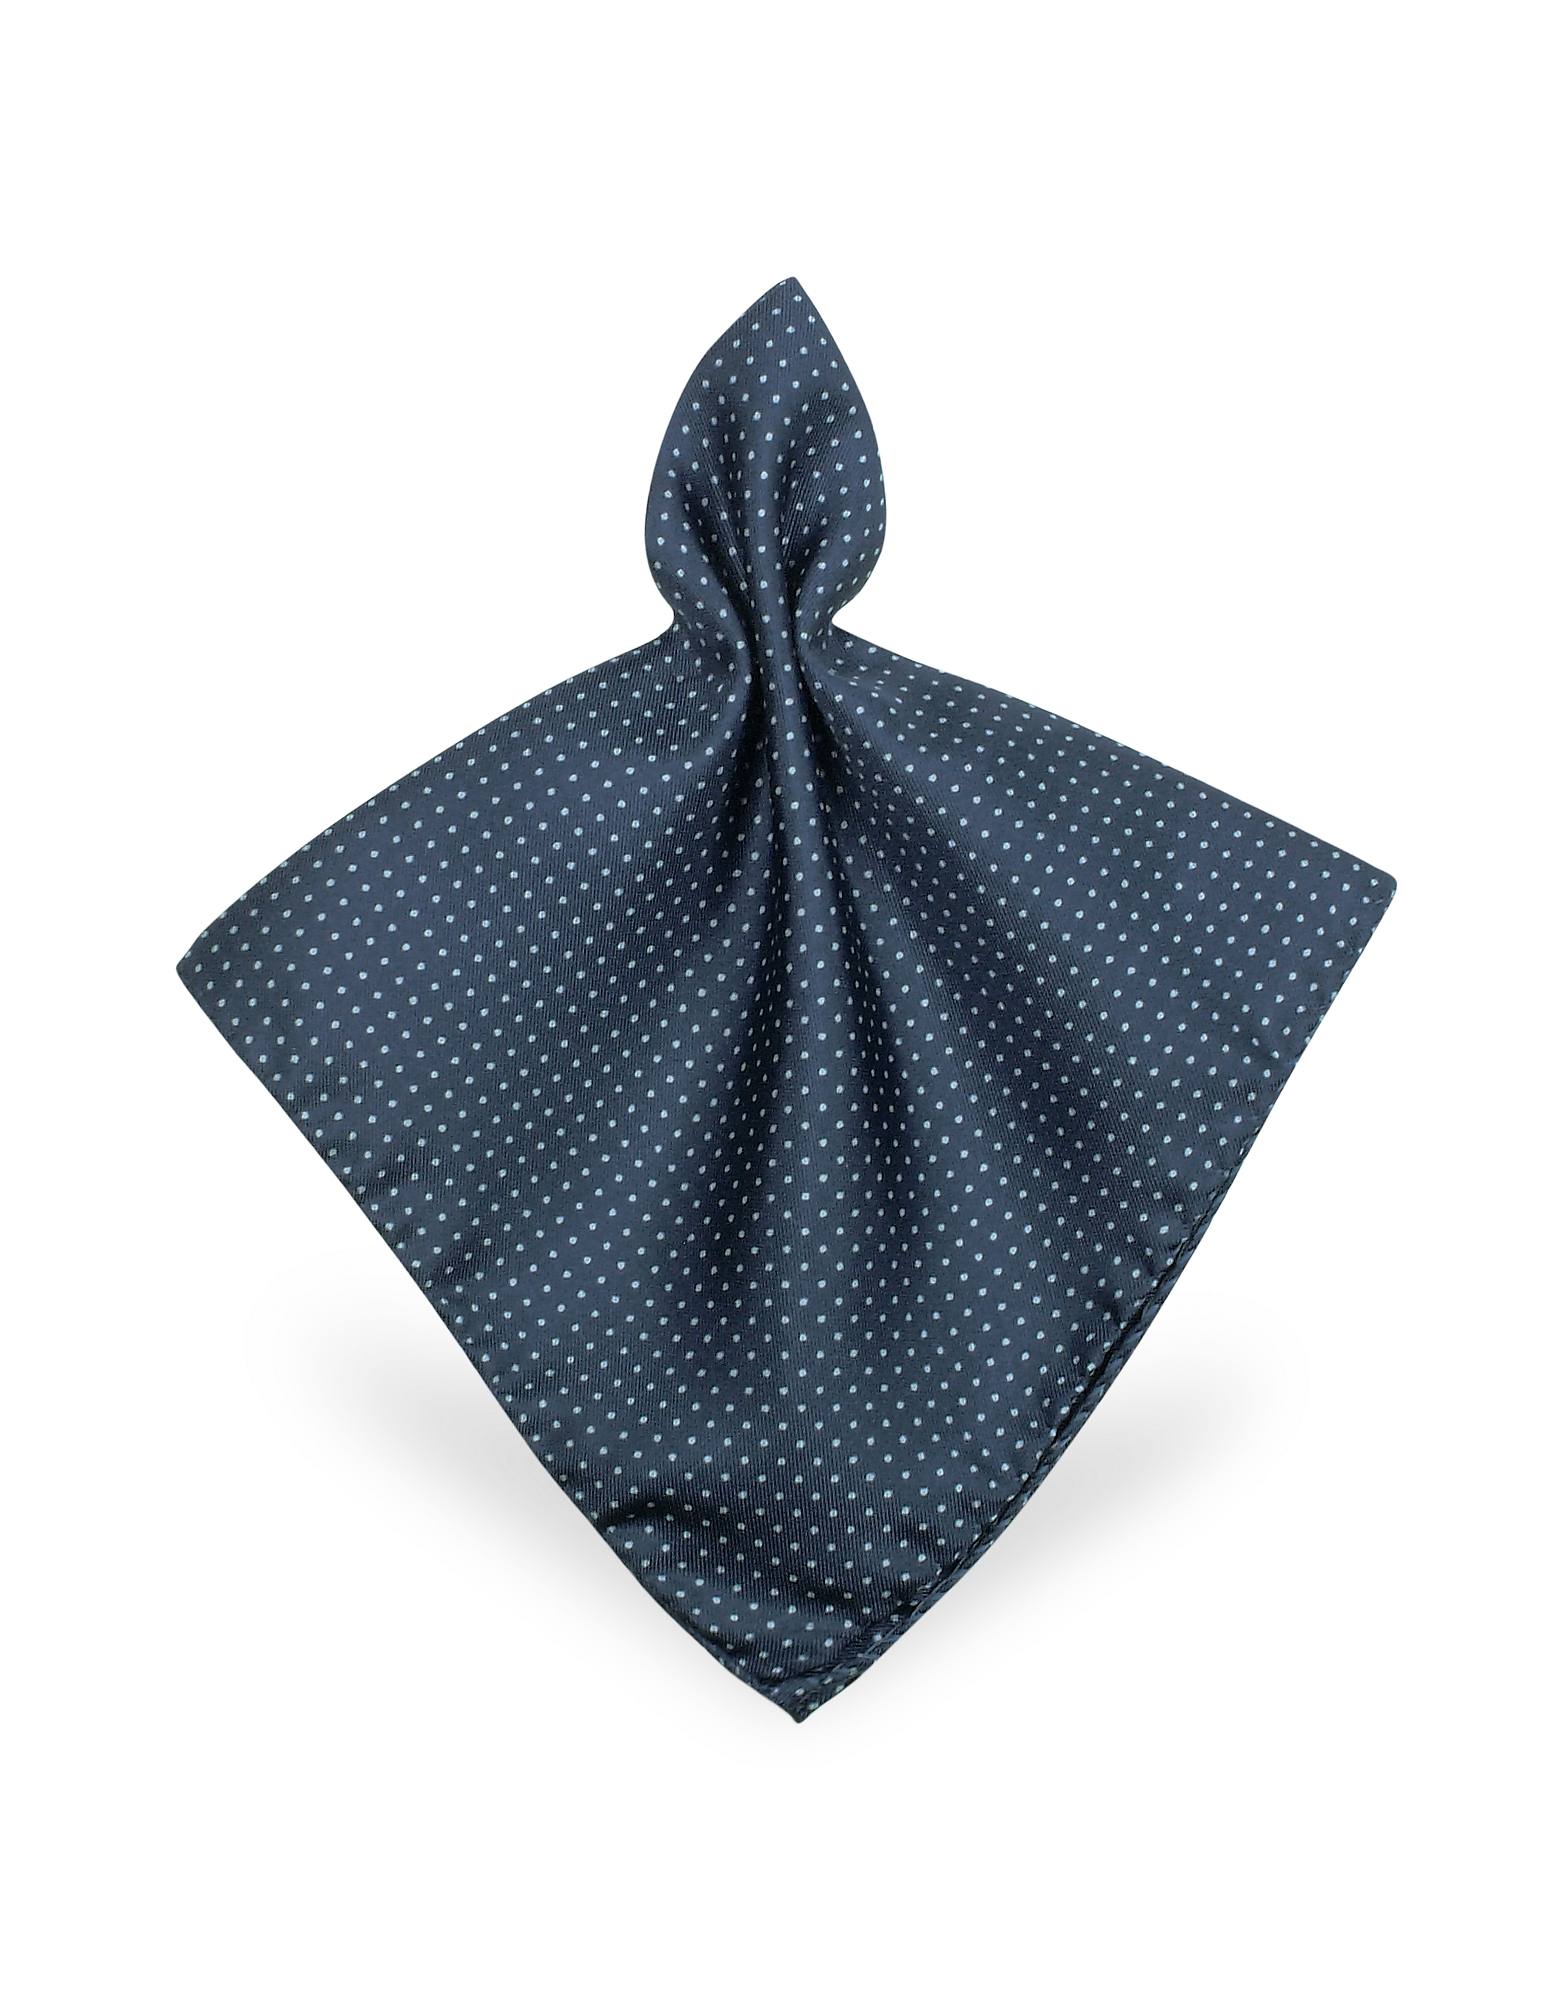 Image of Forzieri Designer Pocket Squares, Mini Polkadot Twill Silk Pocket Square